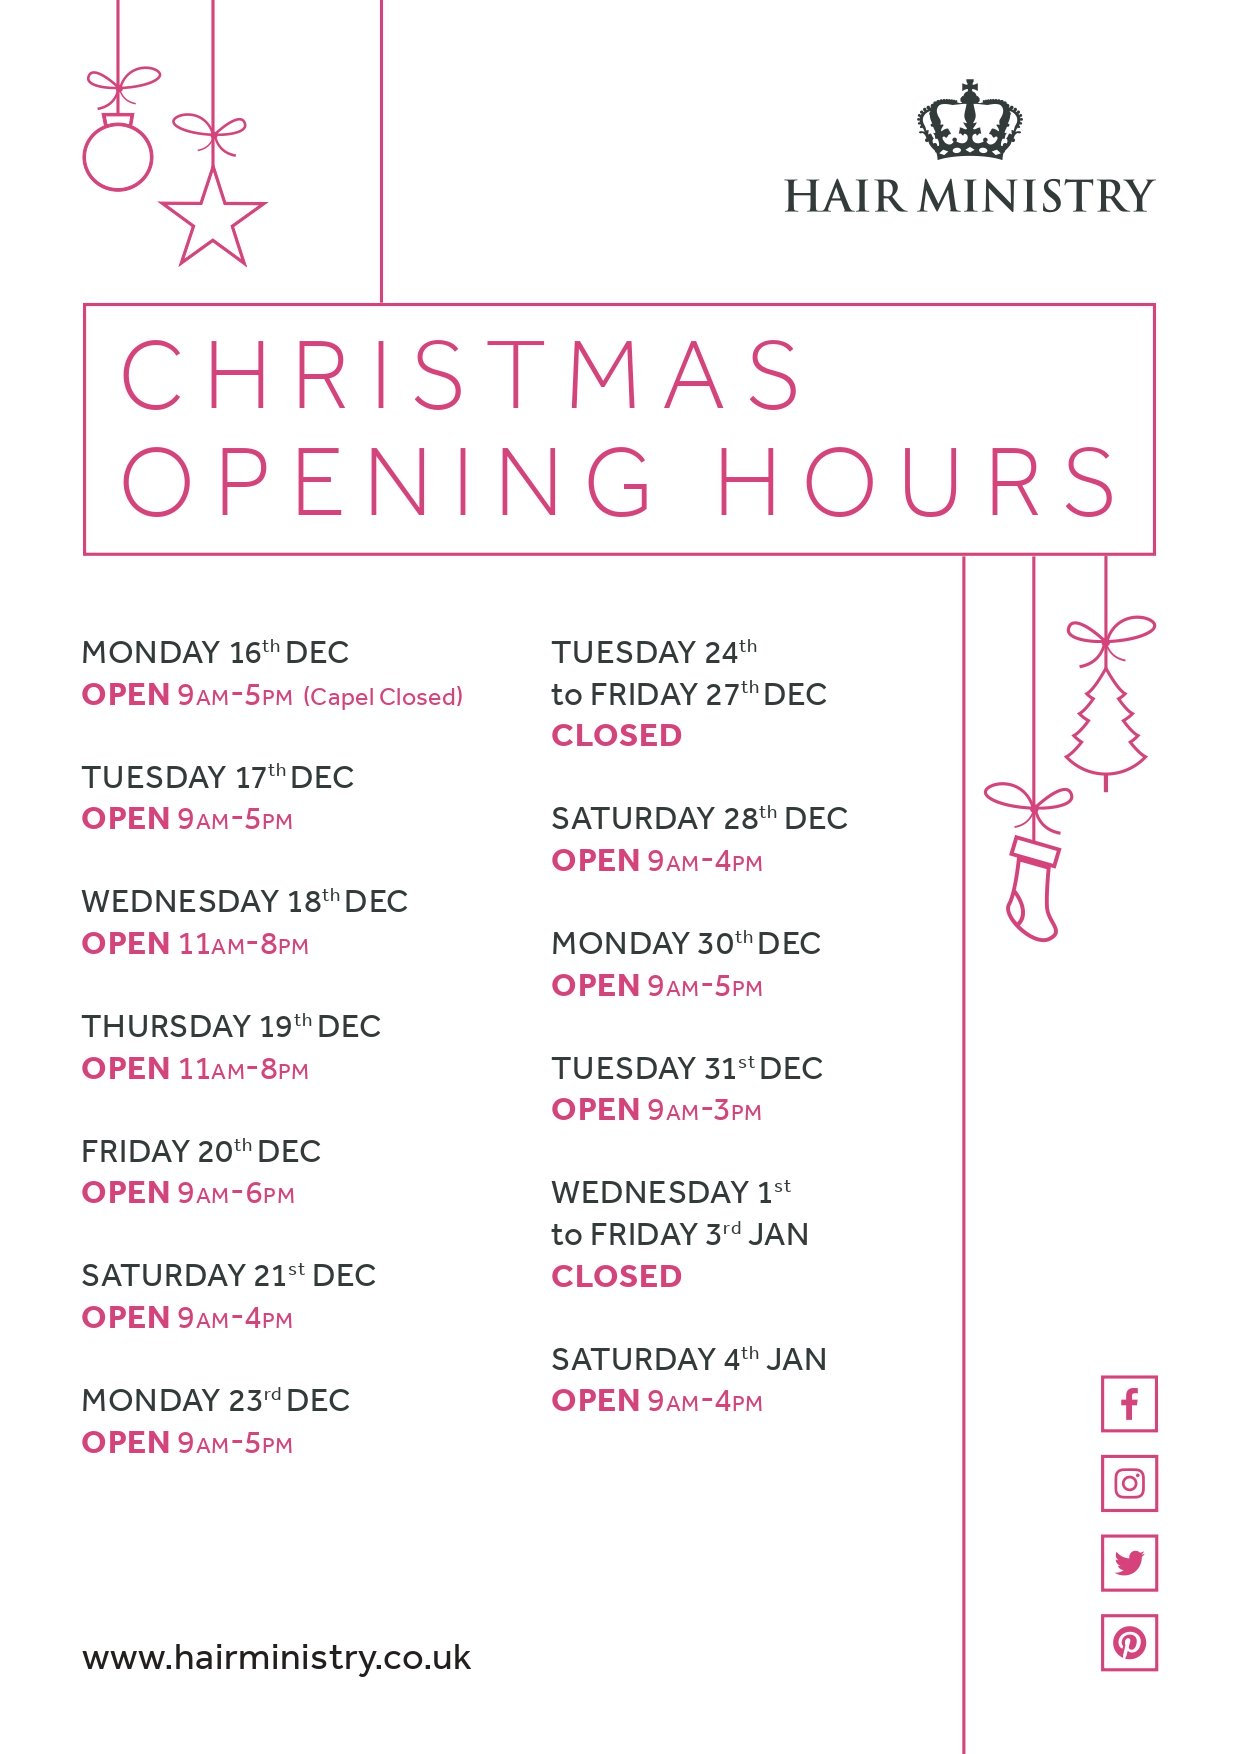 Hair Ministry Opening Times